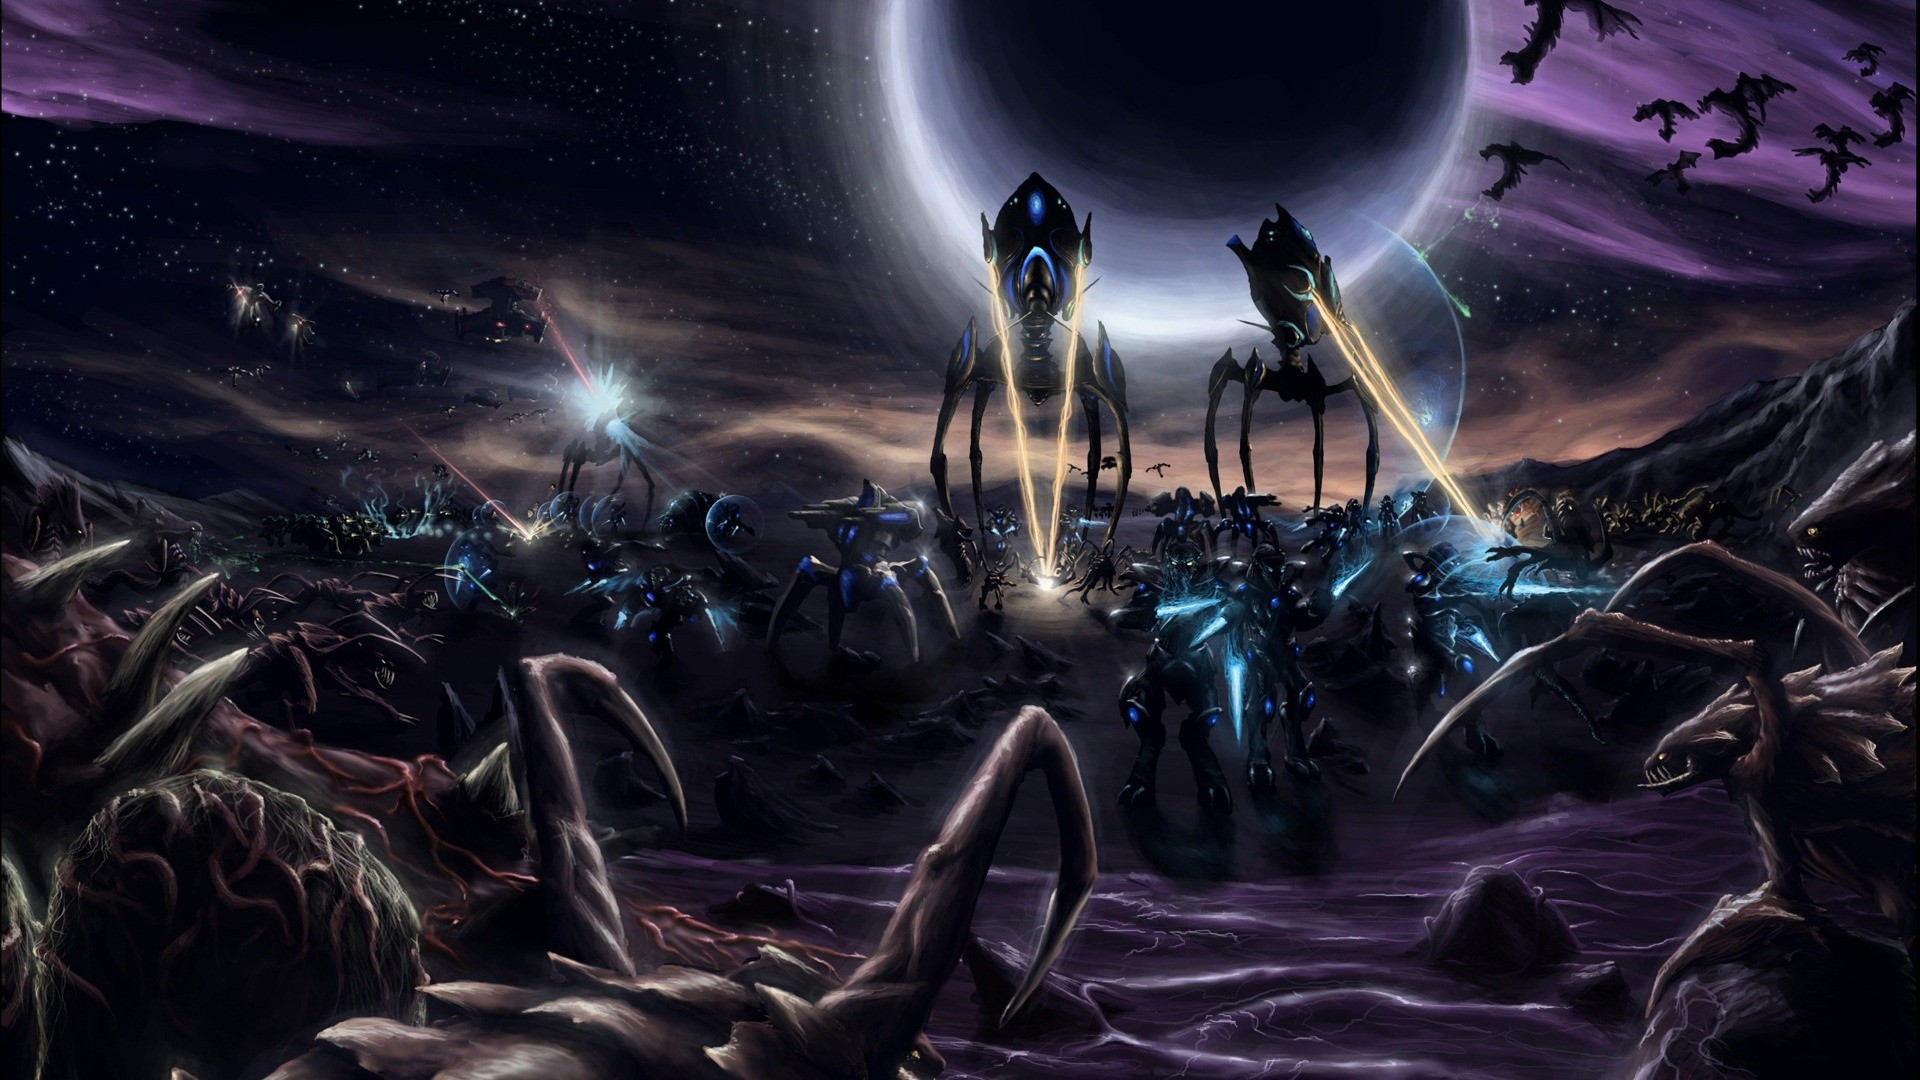 starcraft wallpaper - photo #22